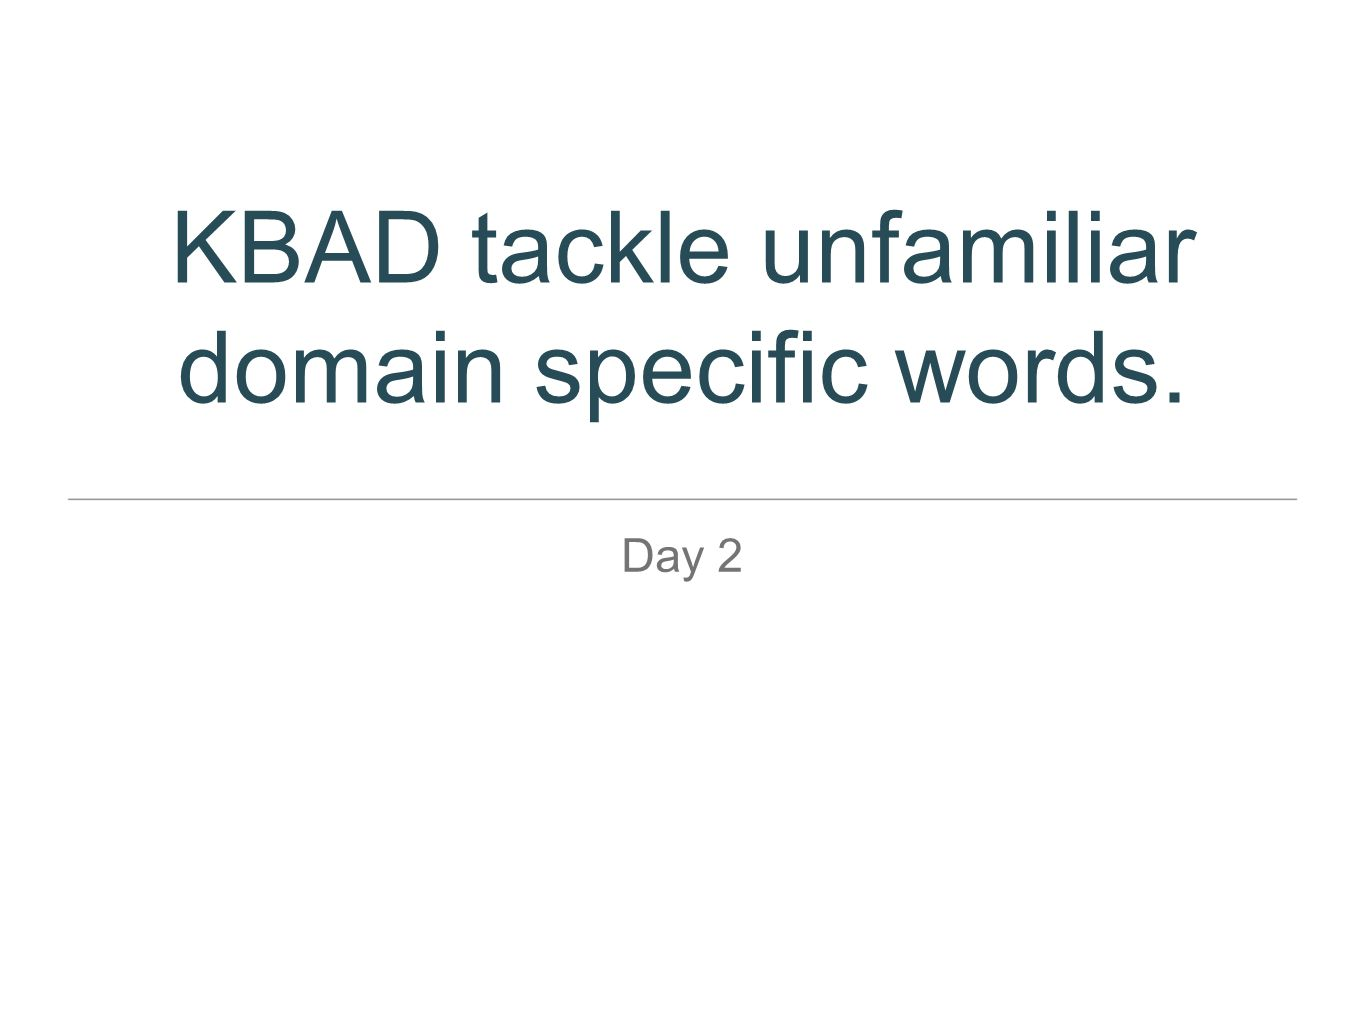 KBAD tackle unfamiliar domain specific words. Day 2